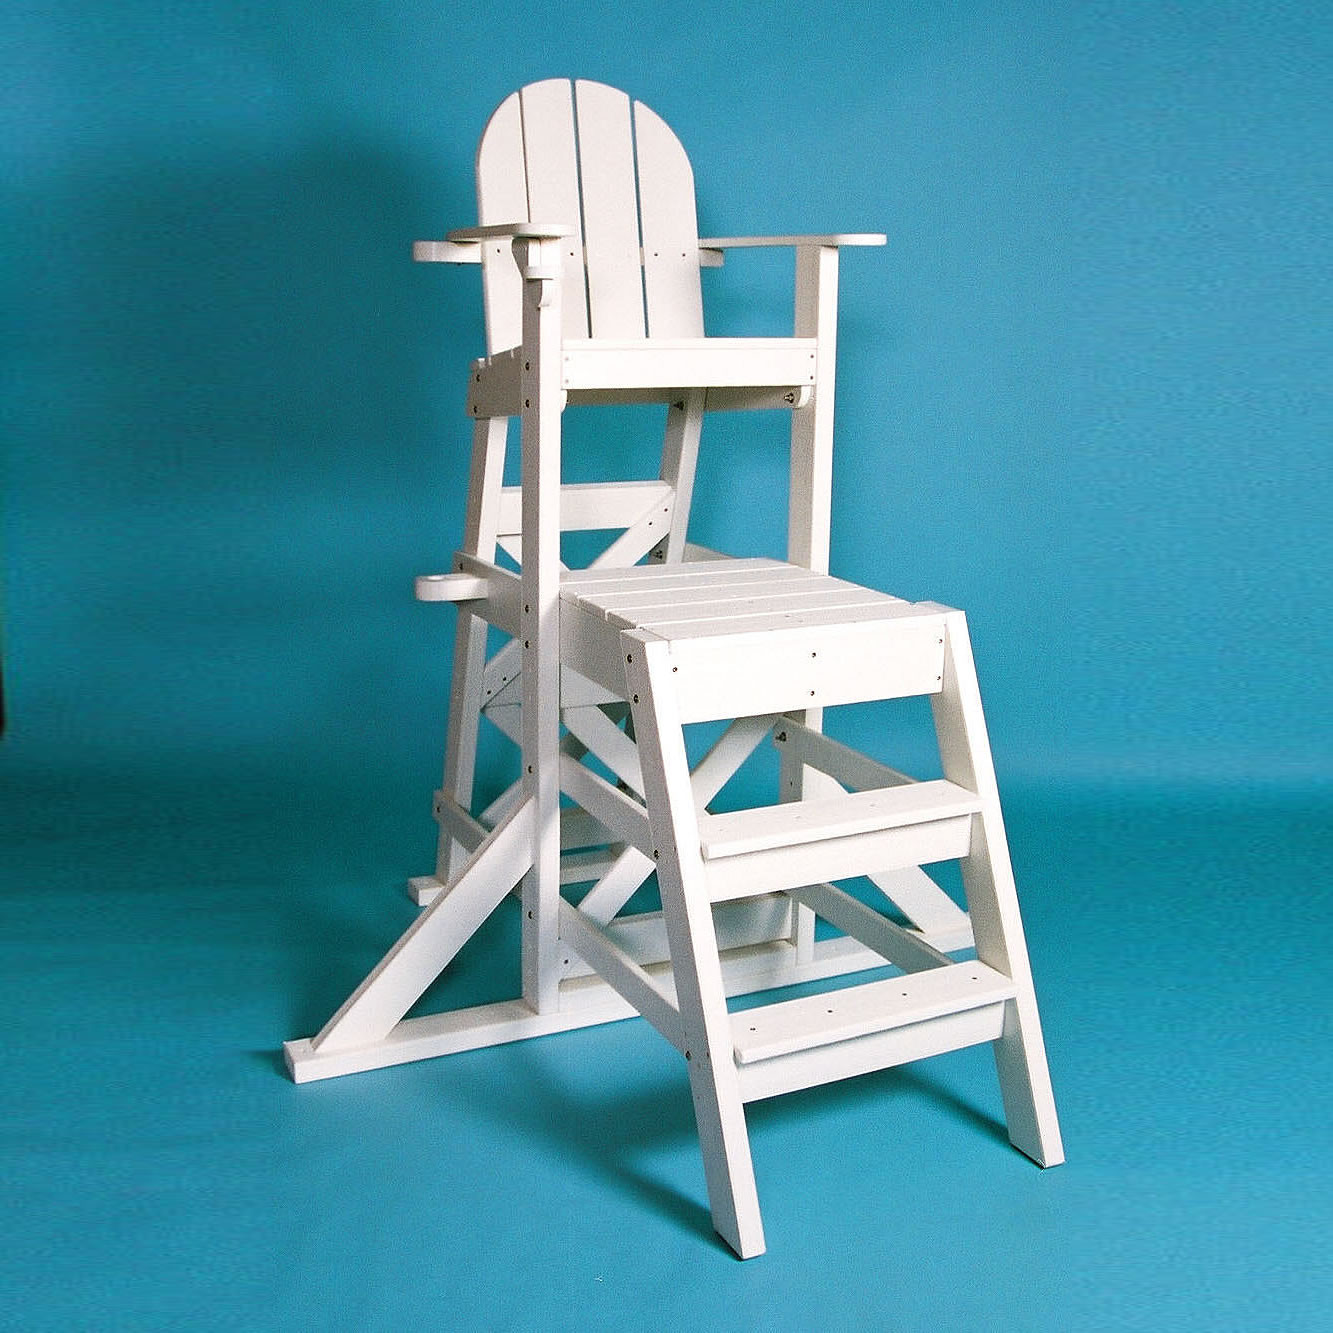 Tailwind MLG525 Medium Lifeguard Chair with Front Ladder